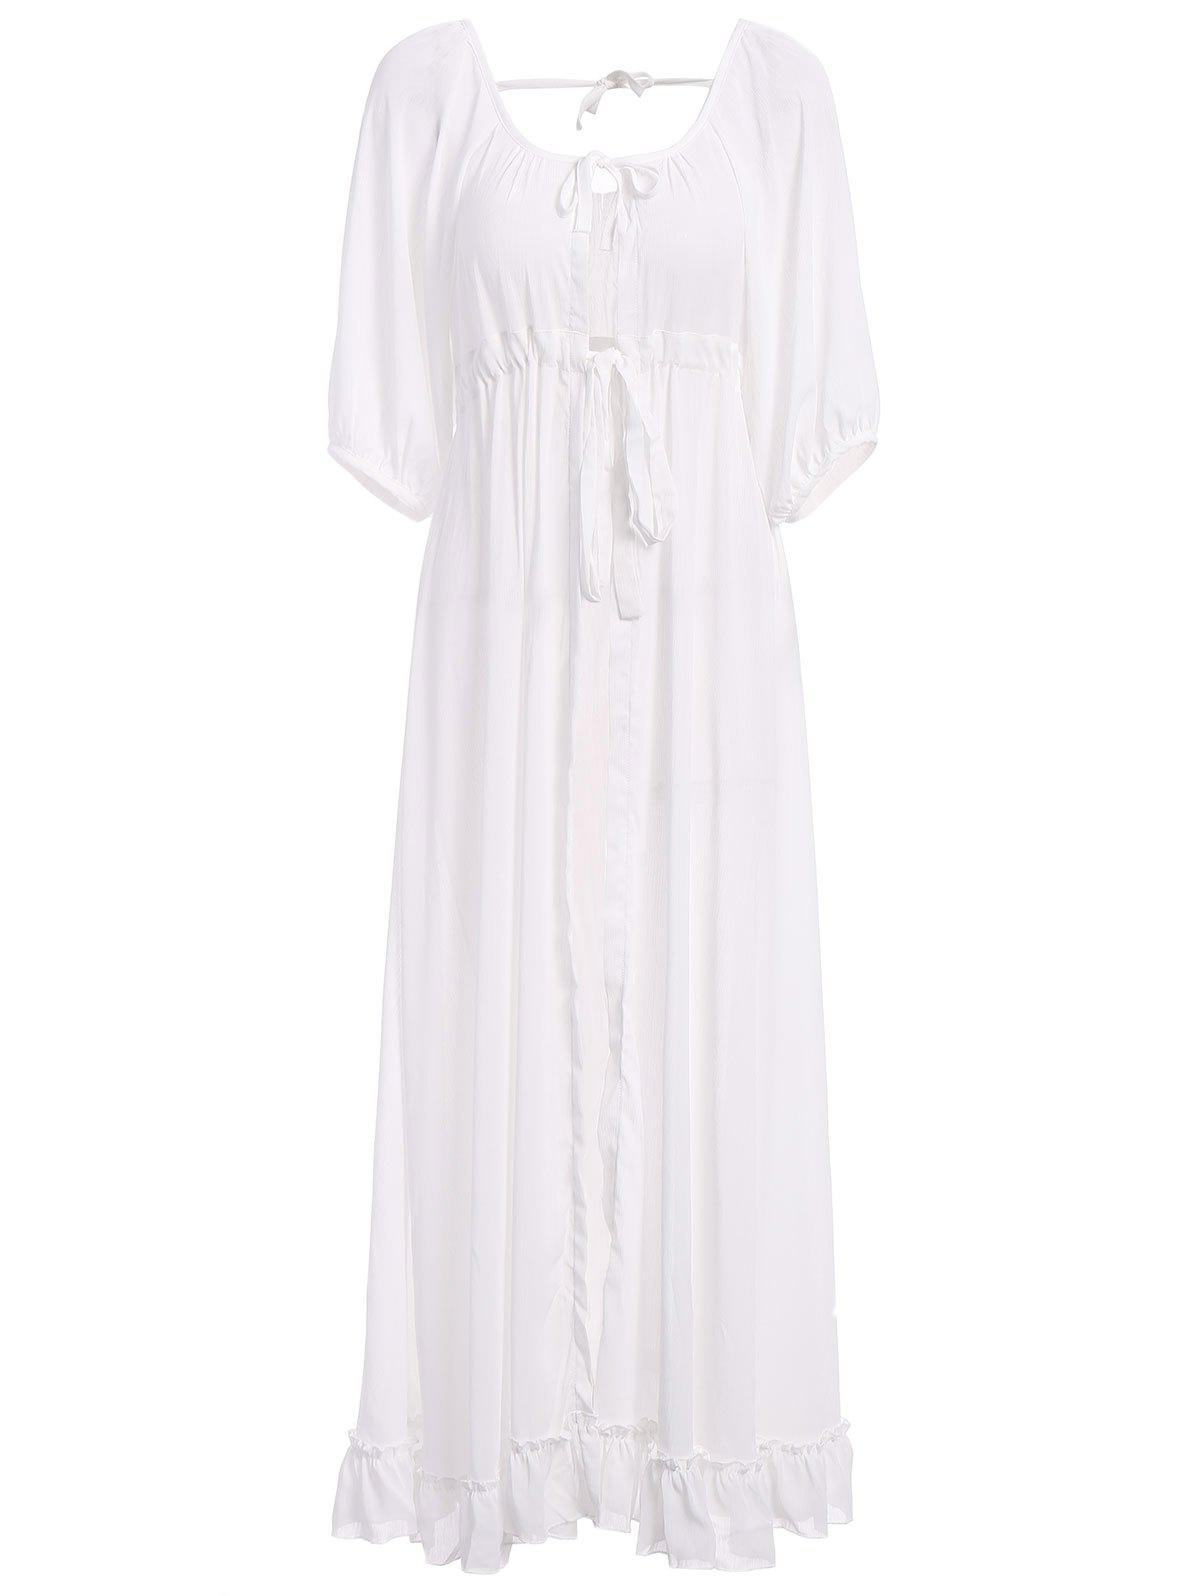 Stylish Women's Scoop Neck 1/2 Sleeve Drawstring Cover-Up Dress - WHITE M